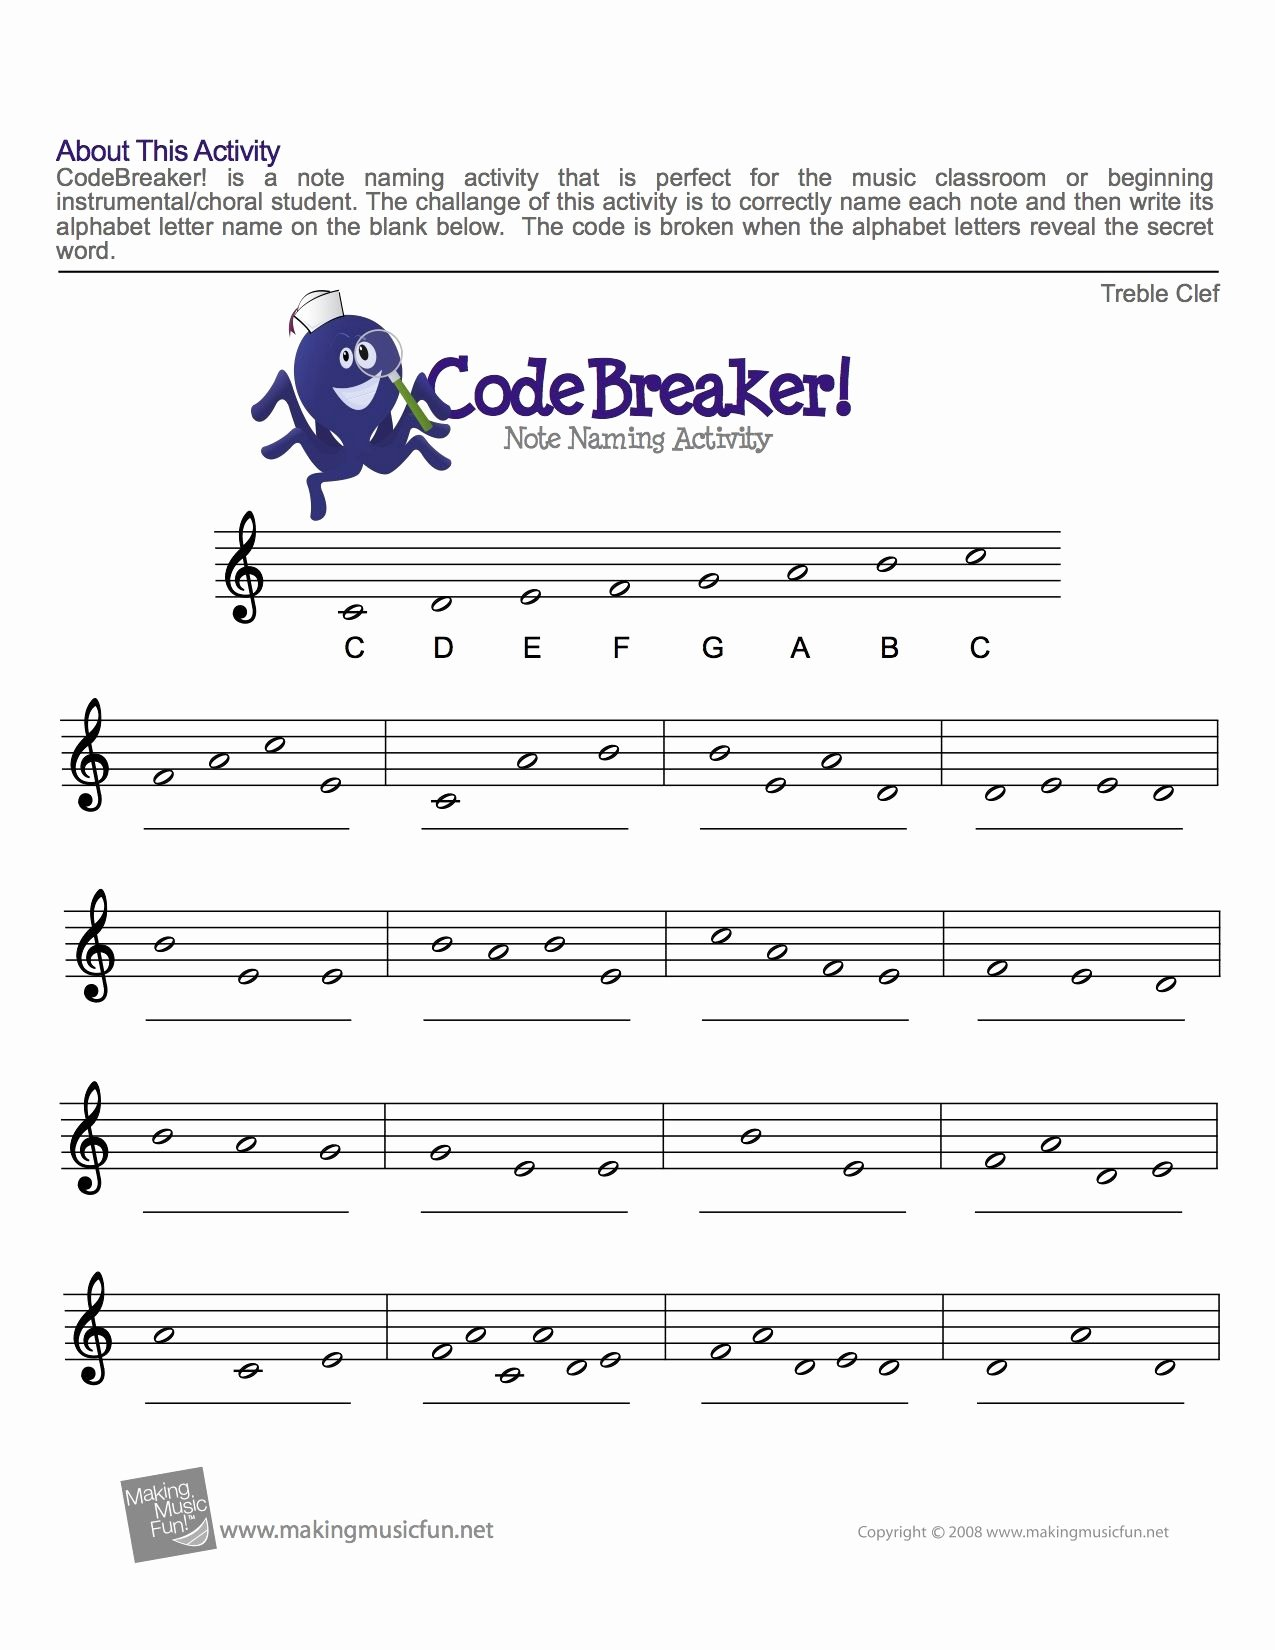 Music theory Worksheets for Preschoolers New Treble Clef Fun Note Reading with Music theory Piano